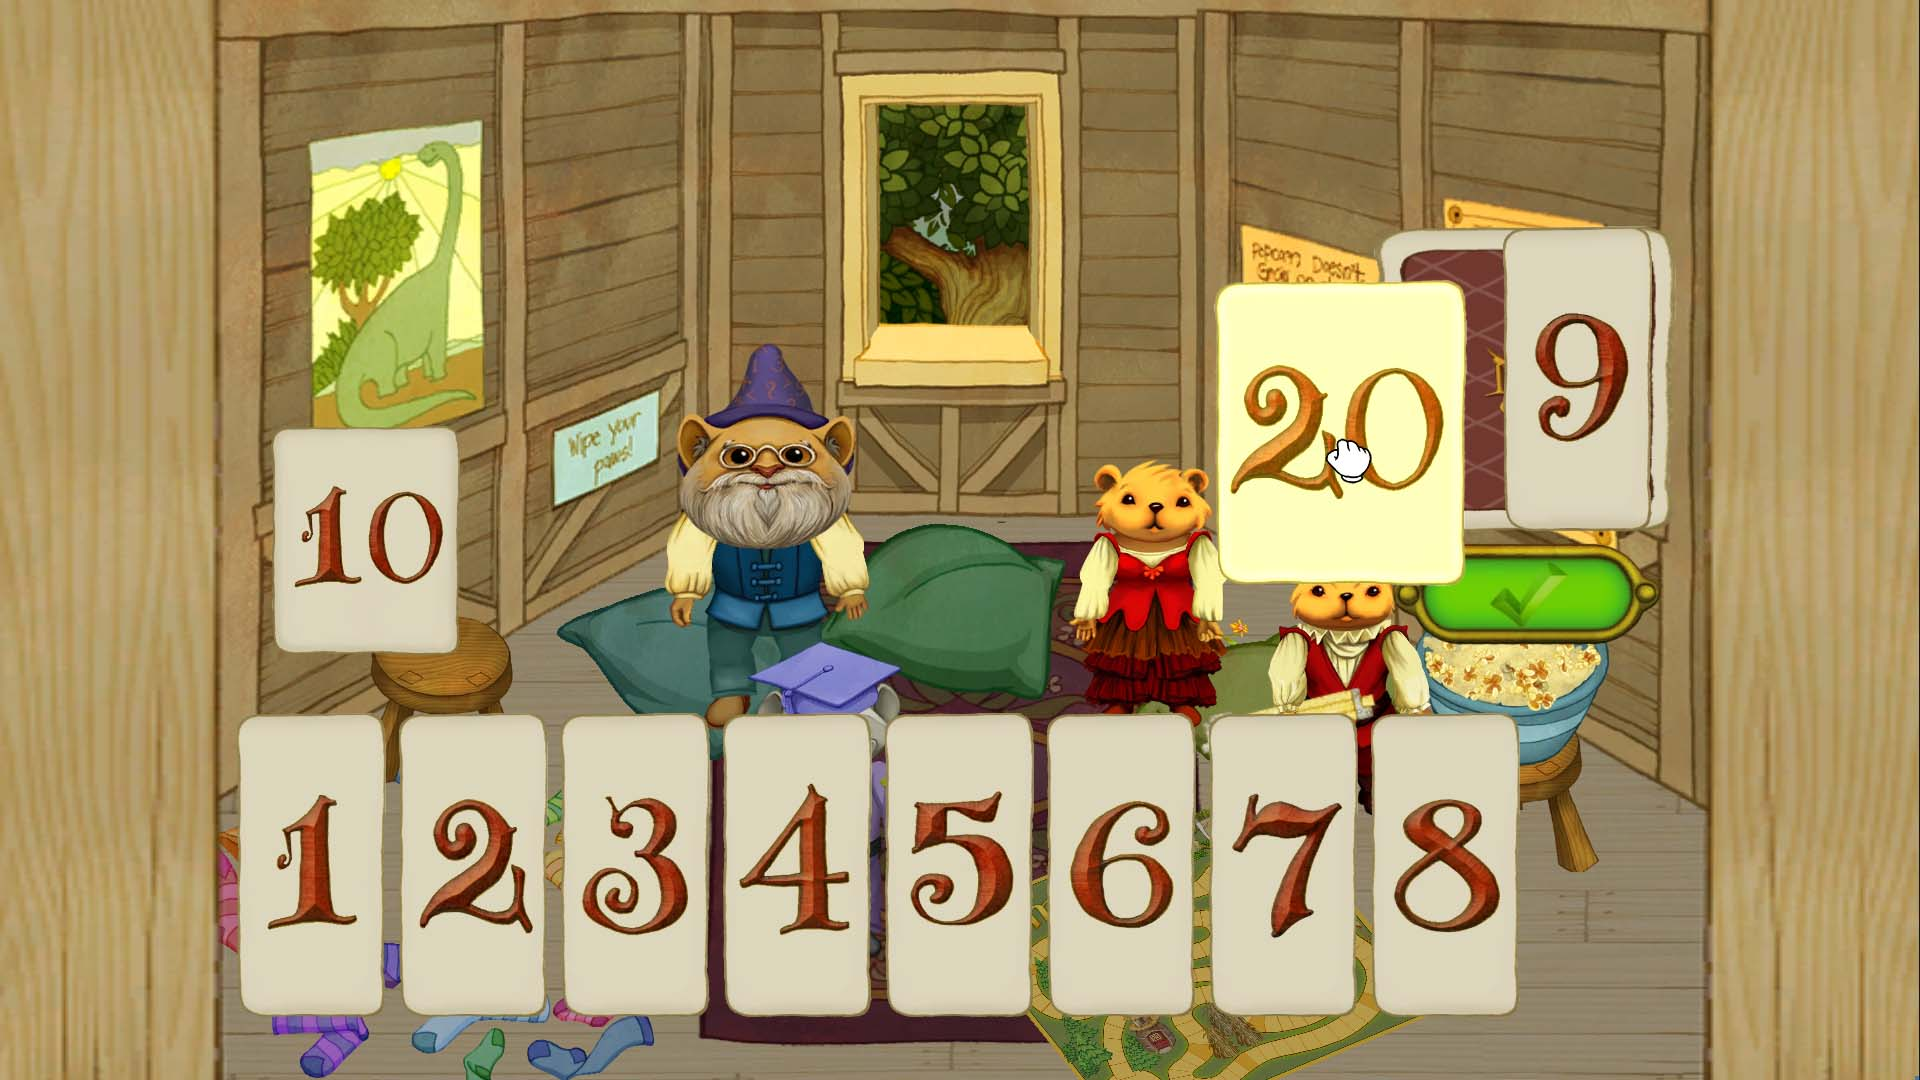 NumberShire from Thought Cycle is designed to help kids struggling with simple number concepts.